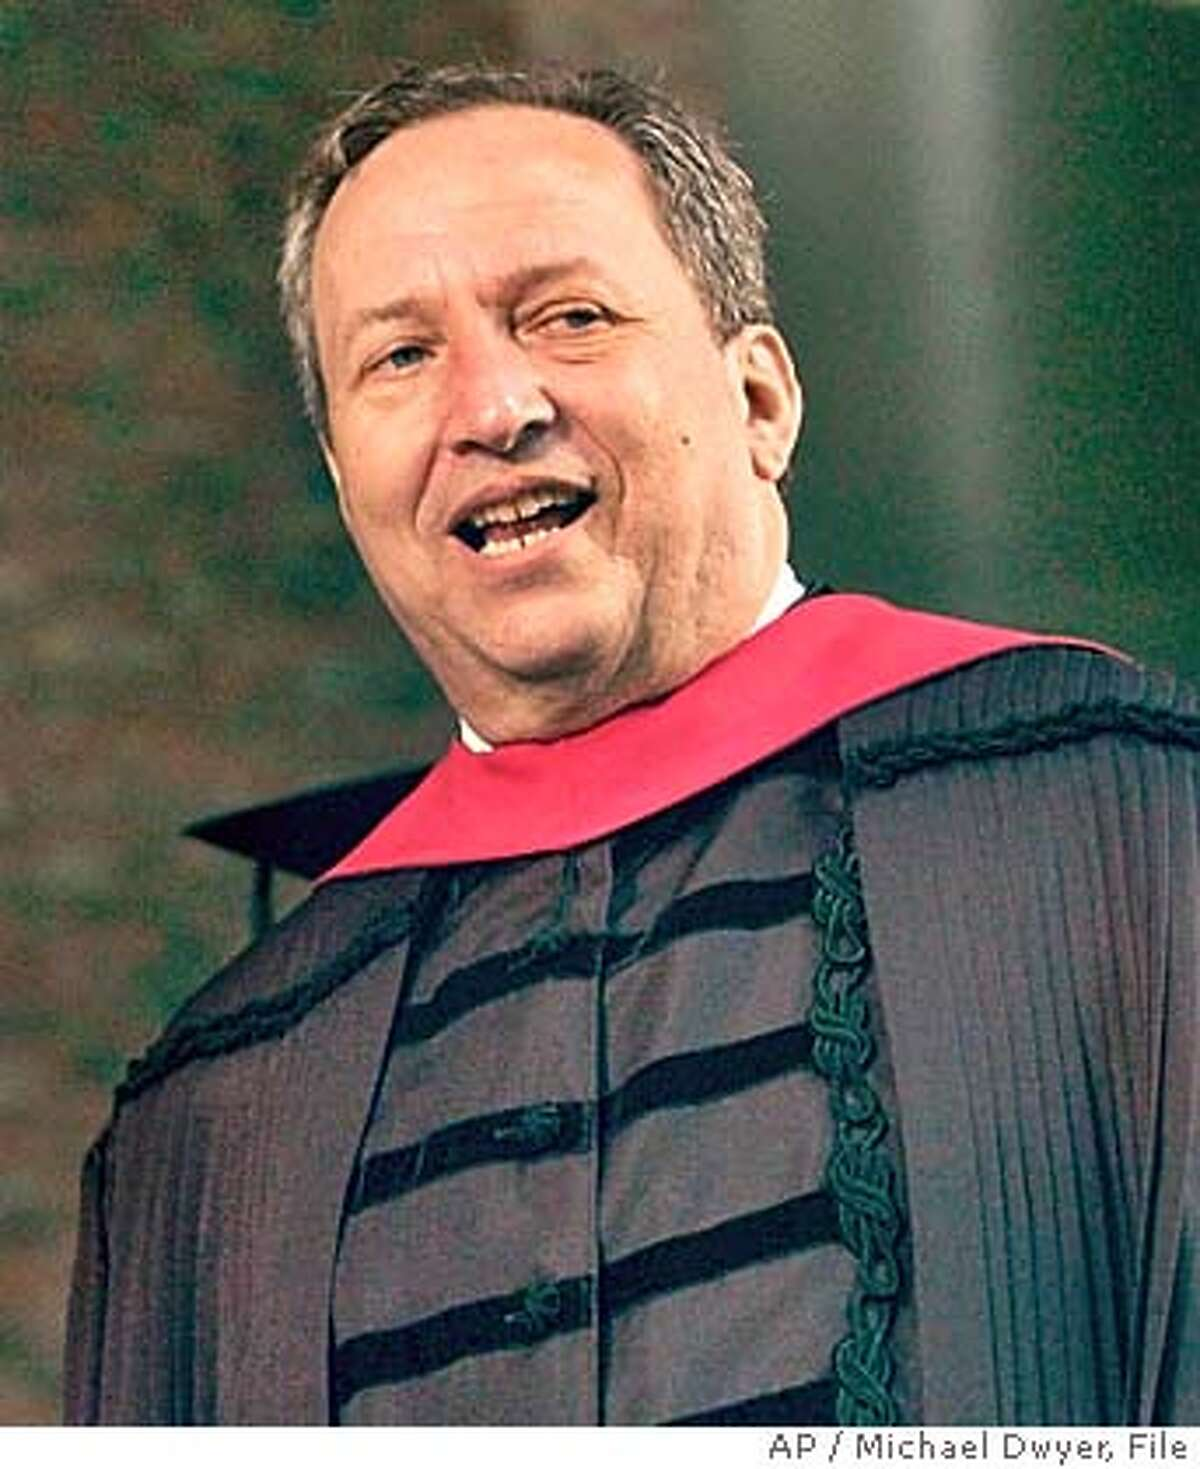 **FILE** Harvard University President Lawrence Summers is shown during Harvard's 353rd commencement ceremonies, in this June 10, 2004, file photo in Cambridge, Mass. Summers is being criticized for saying that women lack the